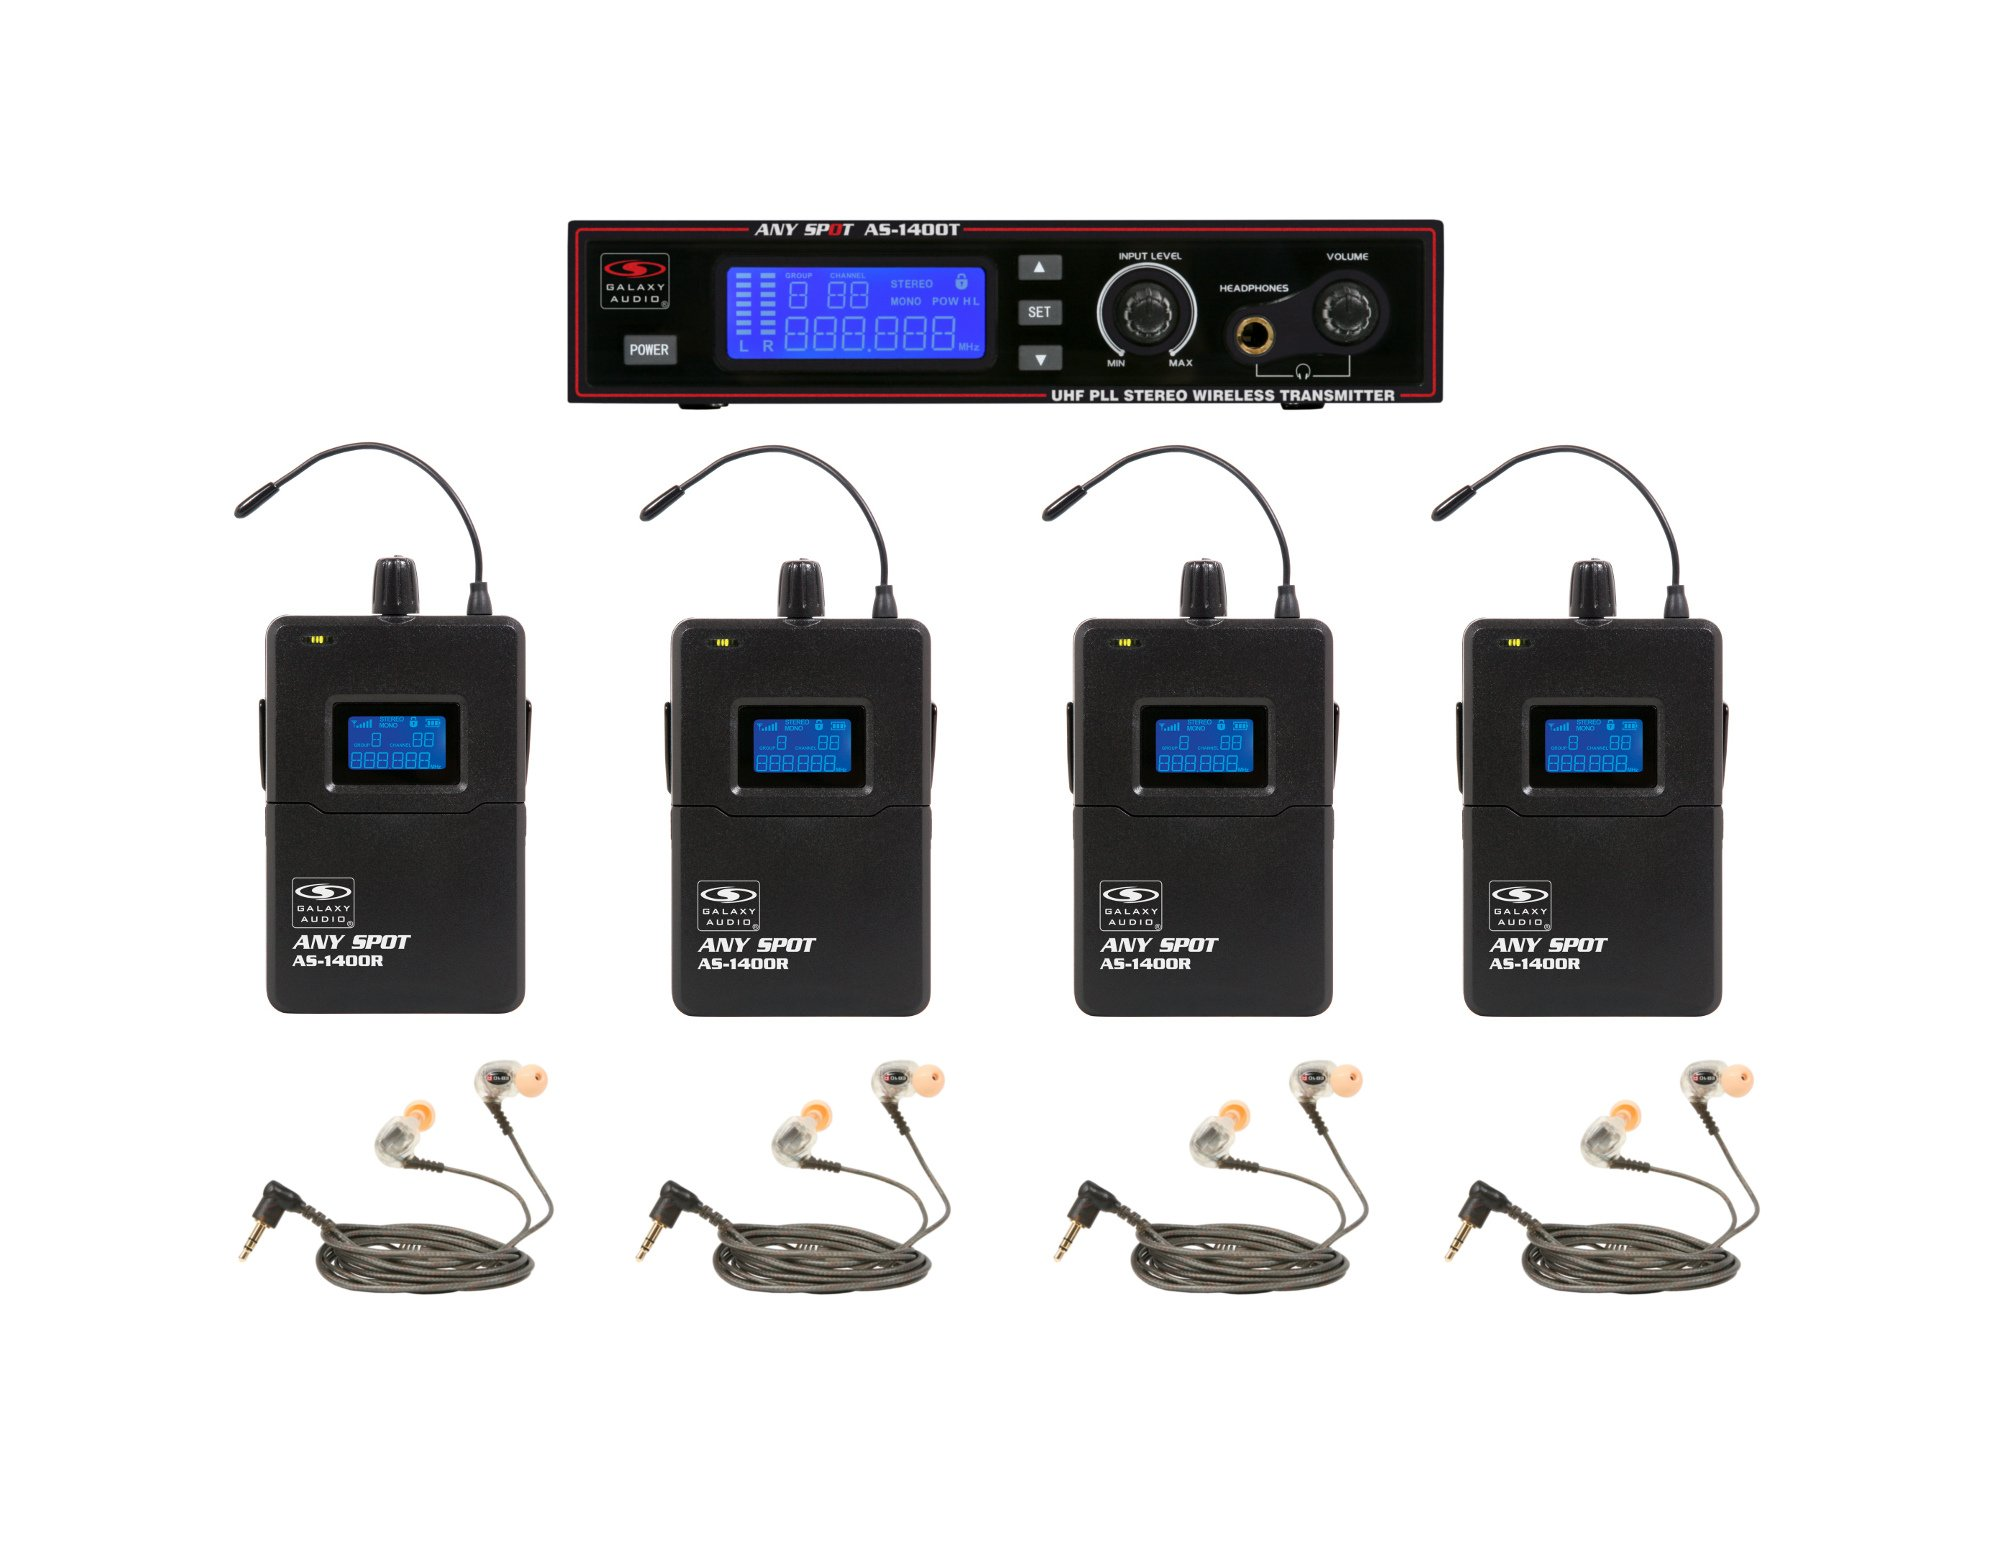 Wireless Personal Monitor Bandpack System with EB10 Ear Buds